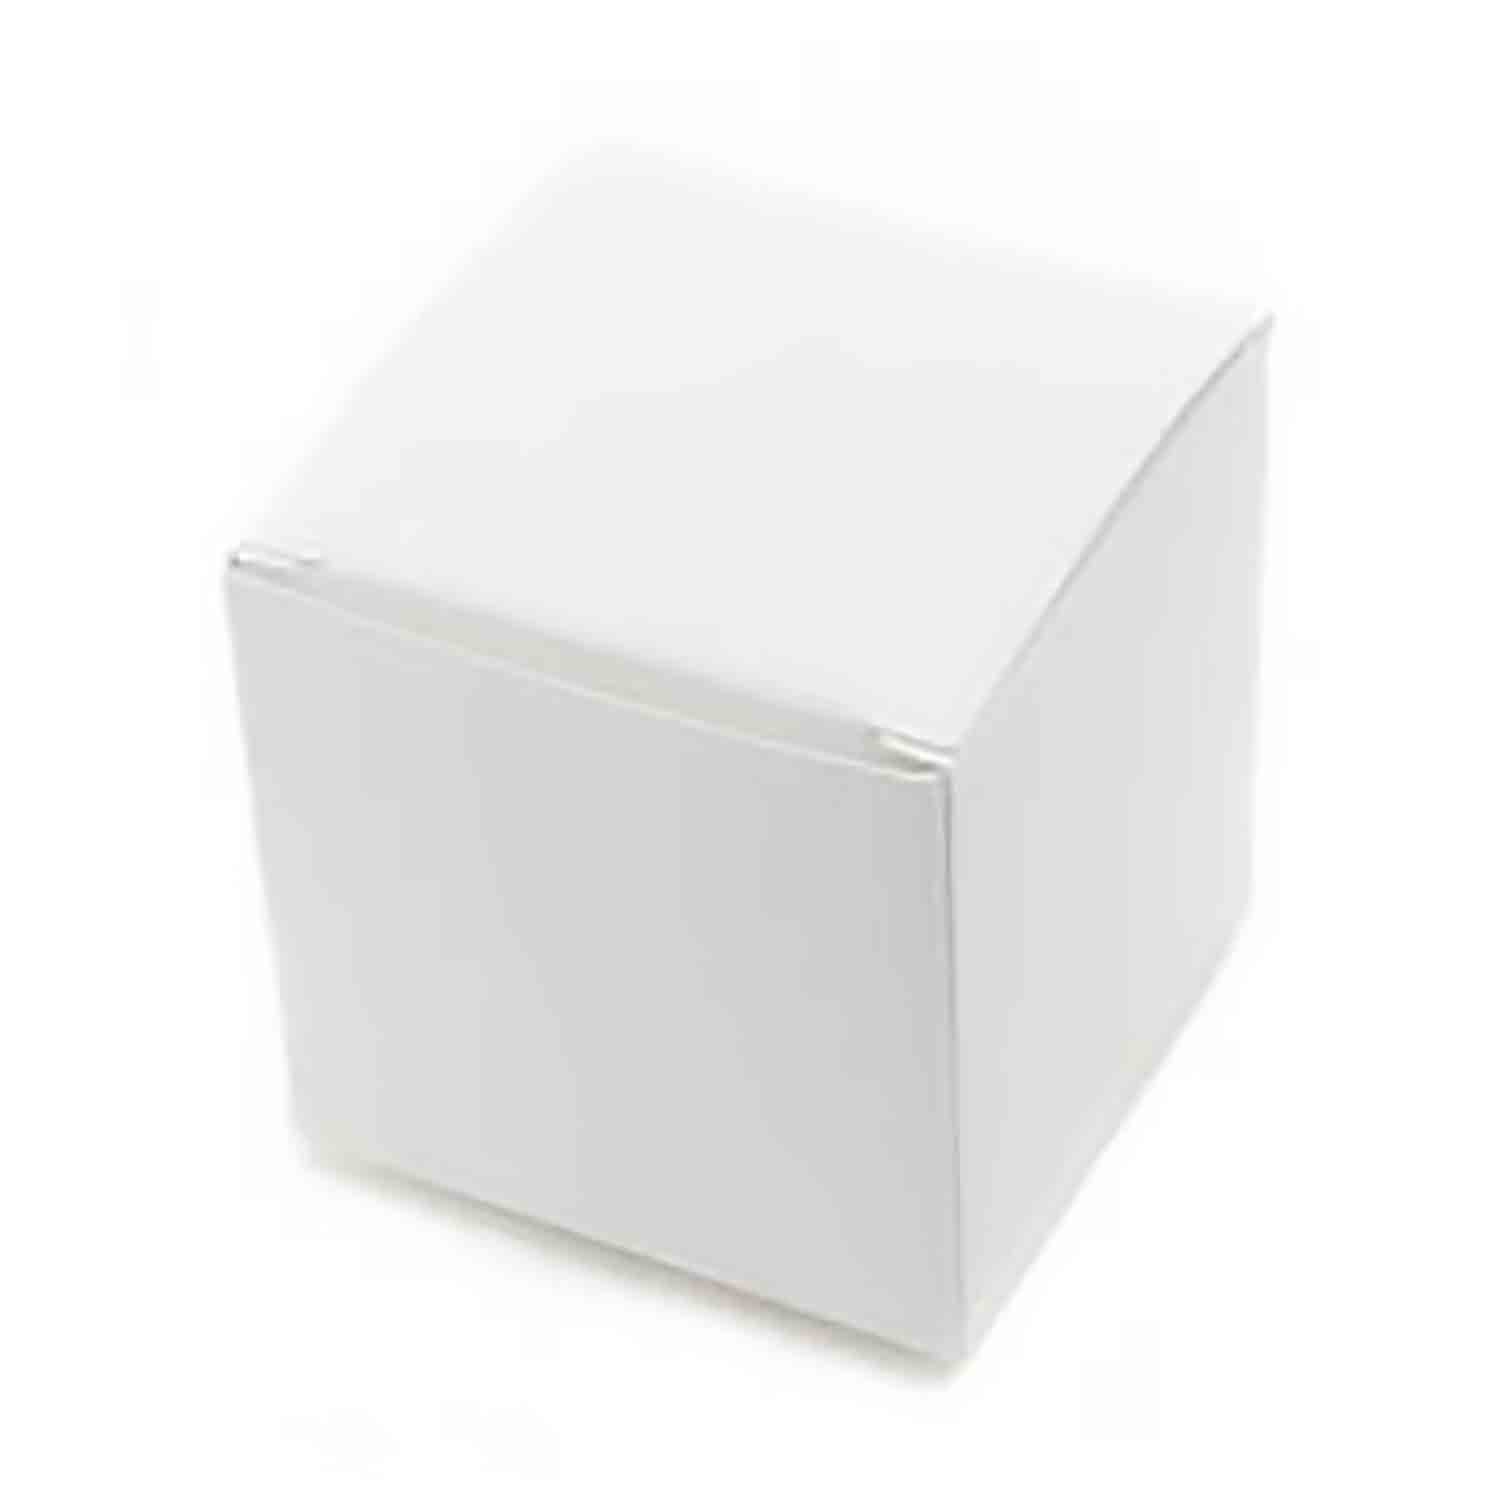 1 Pc. White Large Truffle Candy Box